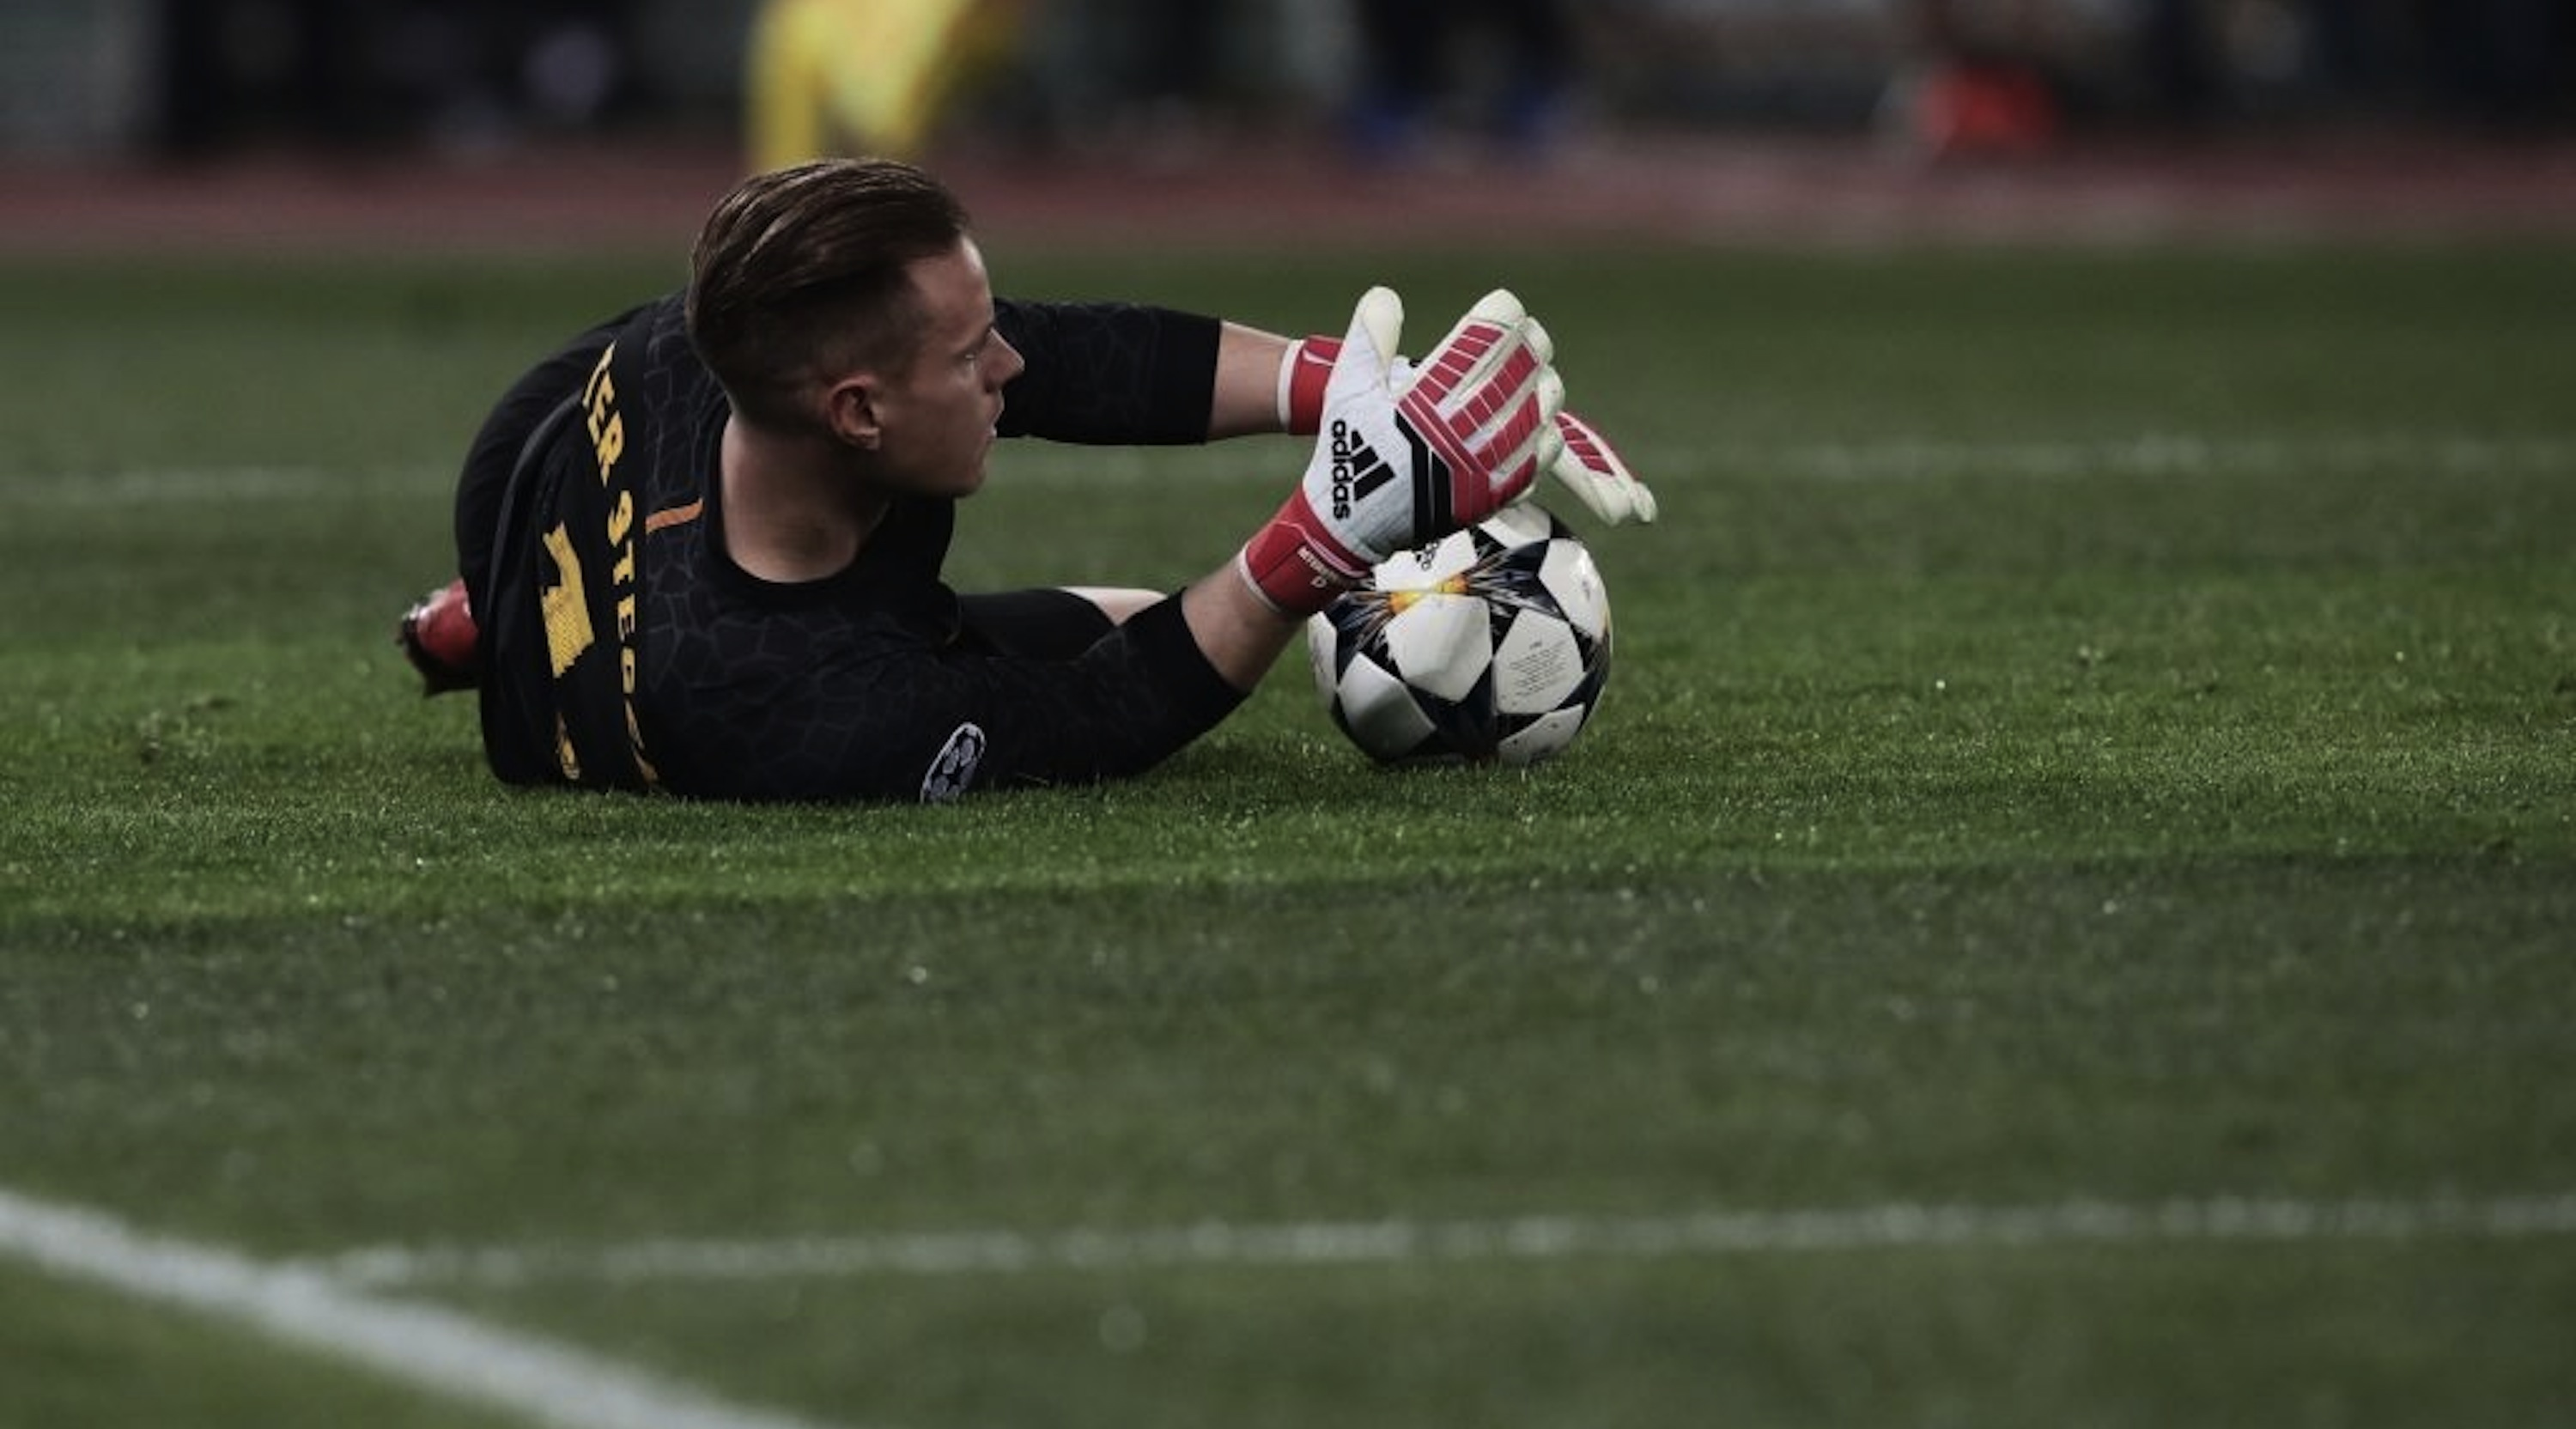 FC Barcelona's German goalkeeper Marc-Andre ter Stegen catches the ball during the UEFA Champions League quarter-final second leg football match between AS Roma and FC Barcelona at the Olympic Stadium in Rome on April 10, 2018. / AFP PHOTO / Isabella BONOTTO (Photo credit should read ISABELLA BONOTTO/AFP/Getty Images)